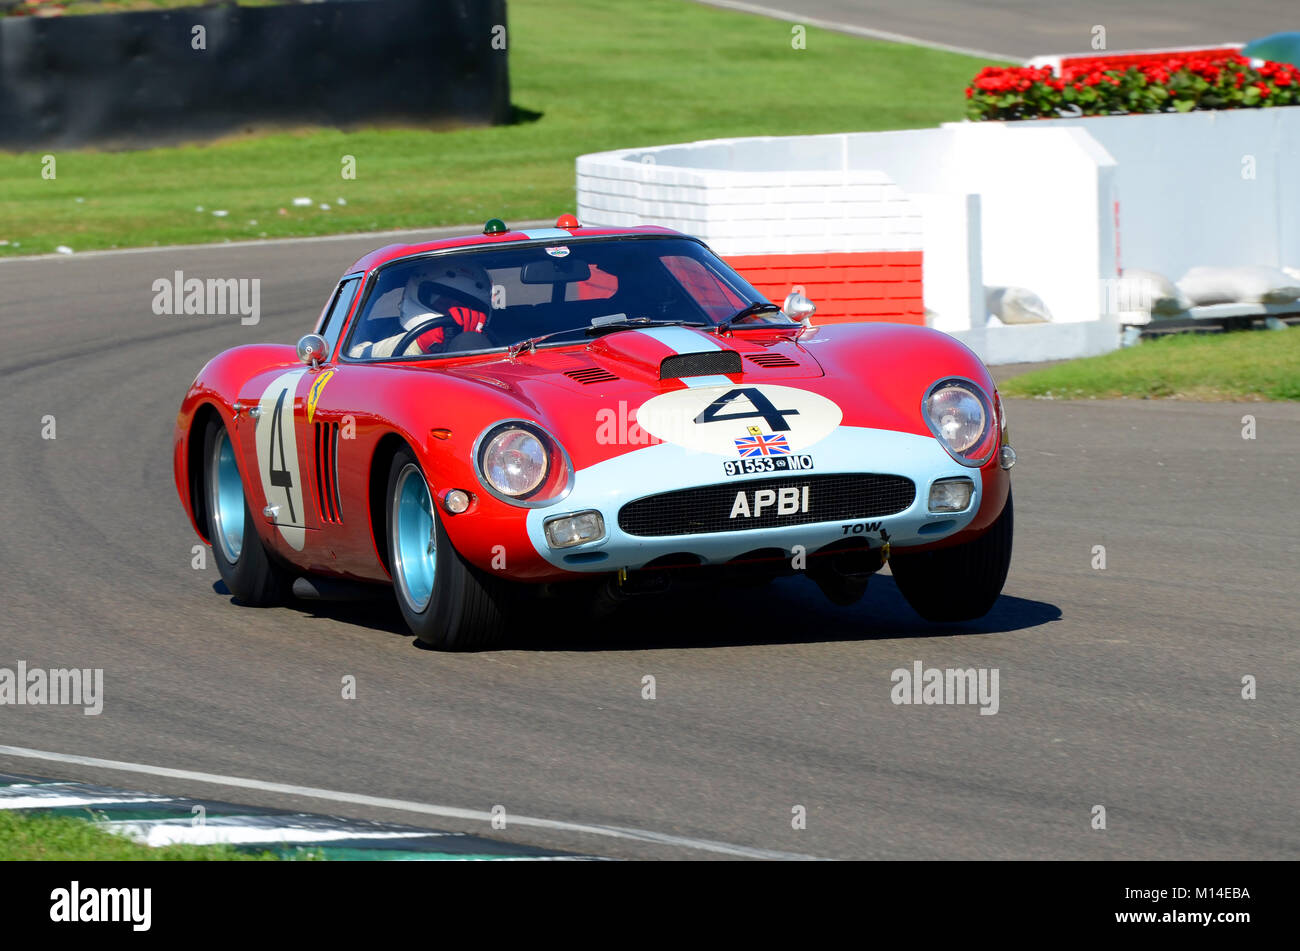 1964 Ferrari 250 GTO owned by Anthony Bamford driven by Christian Horner in the RAC TT Celebration at the Goodwood - Stock Image